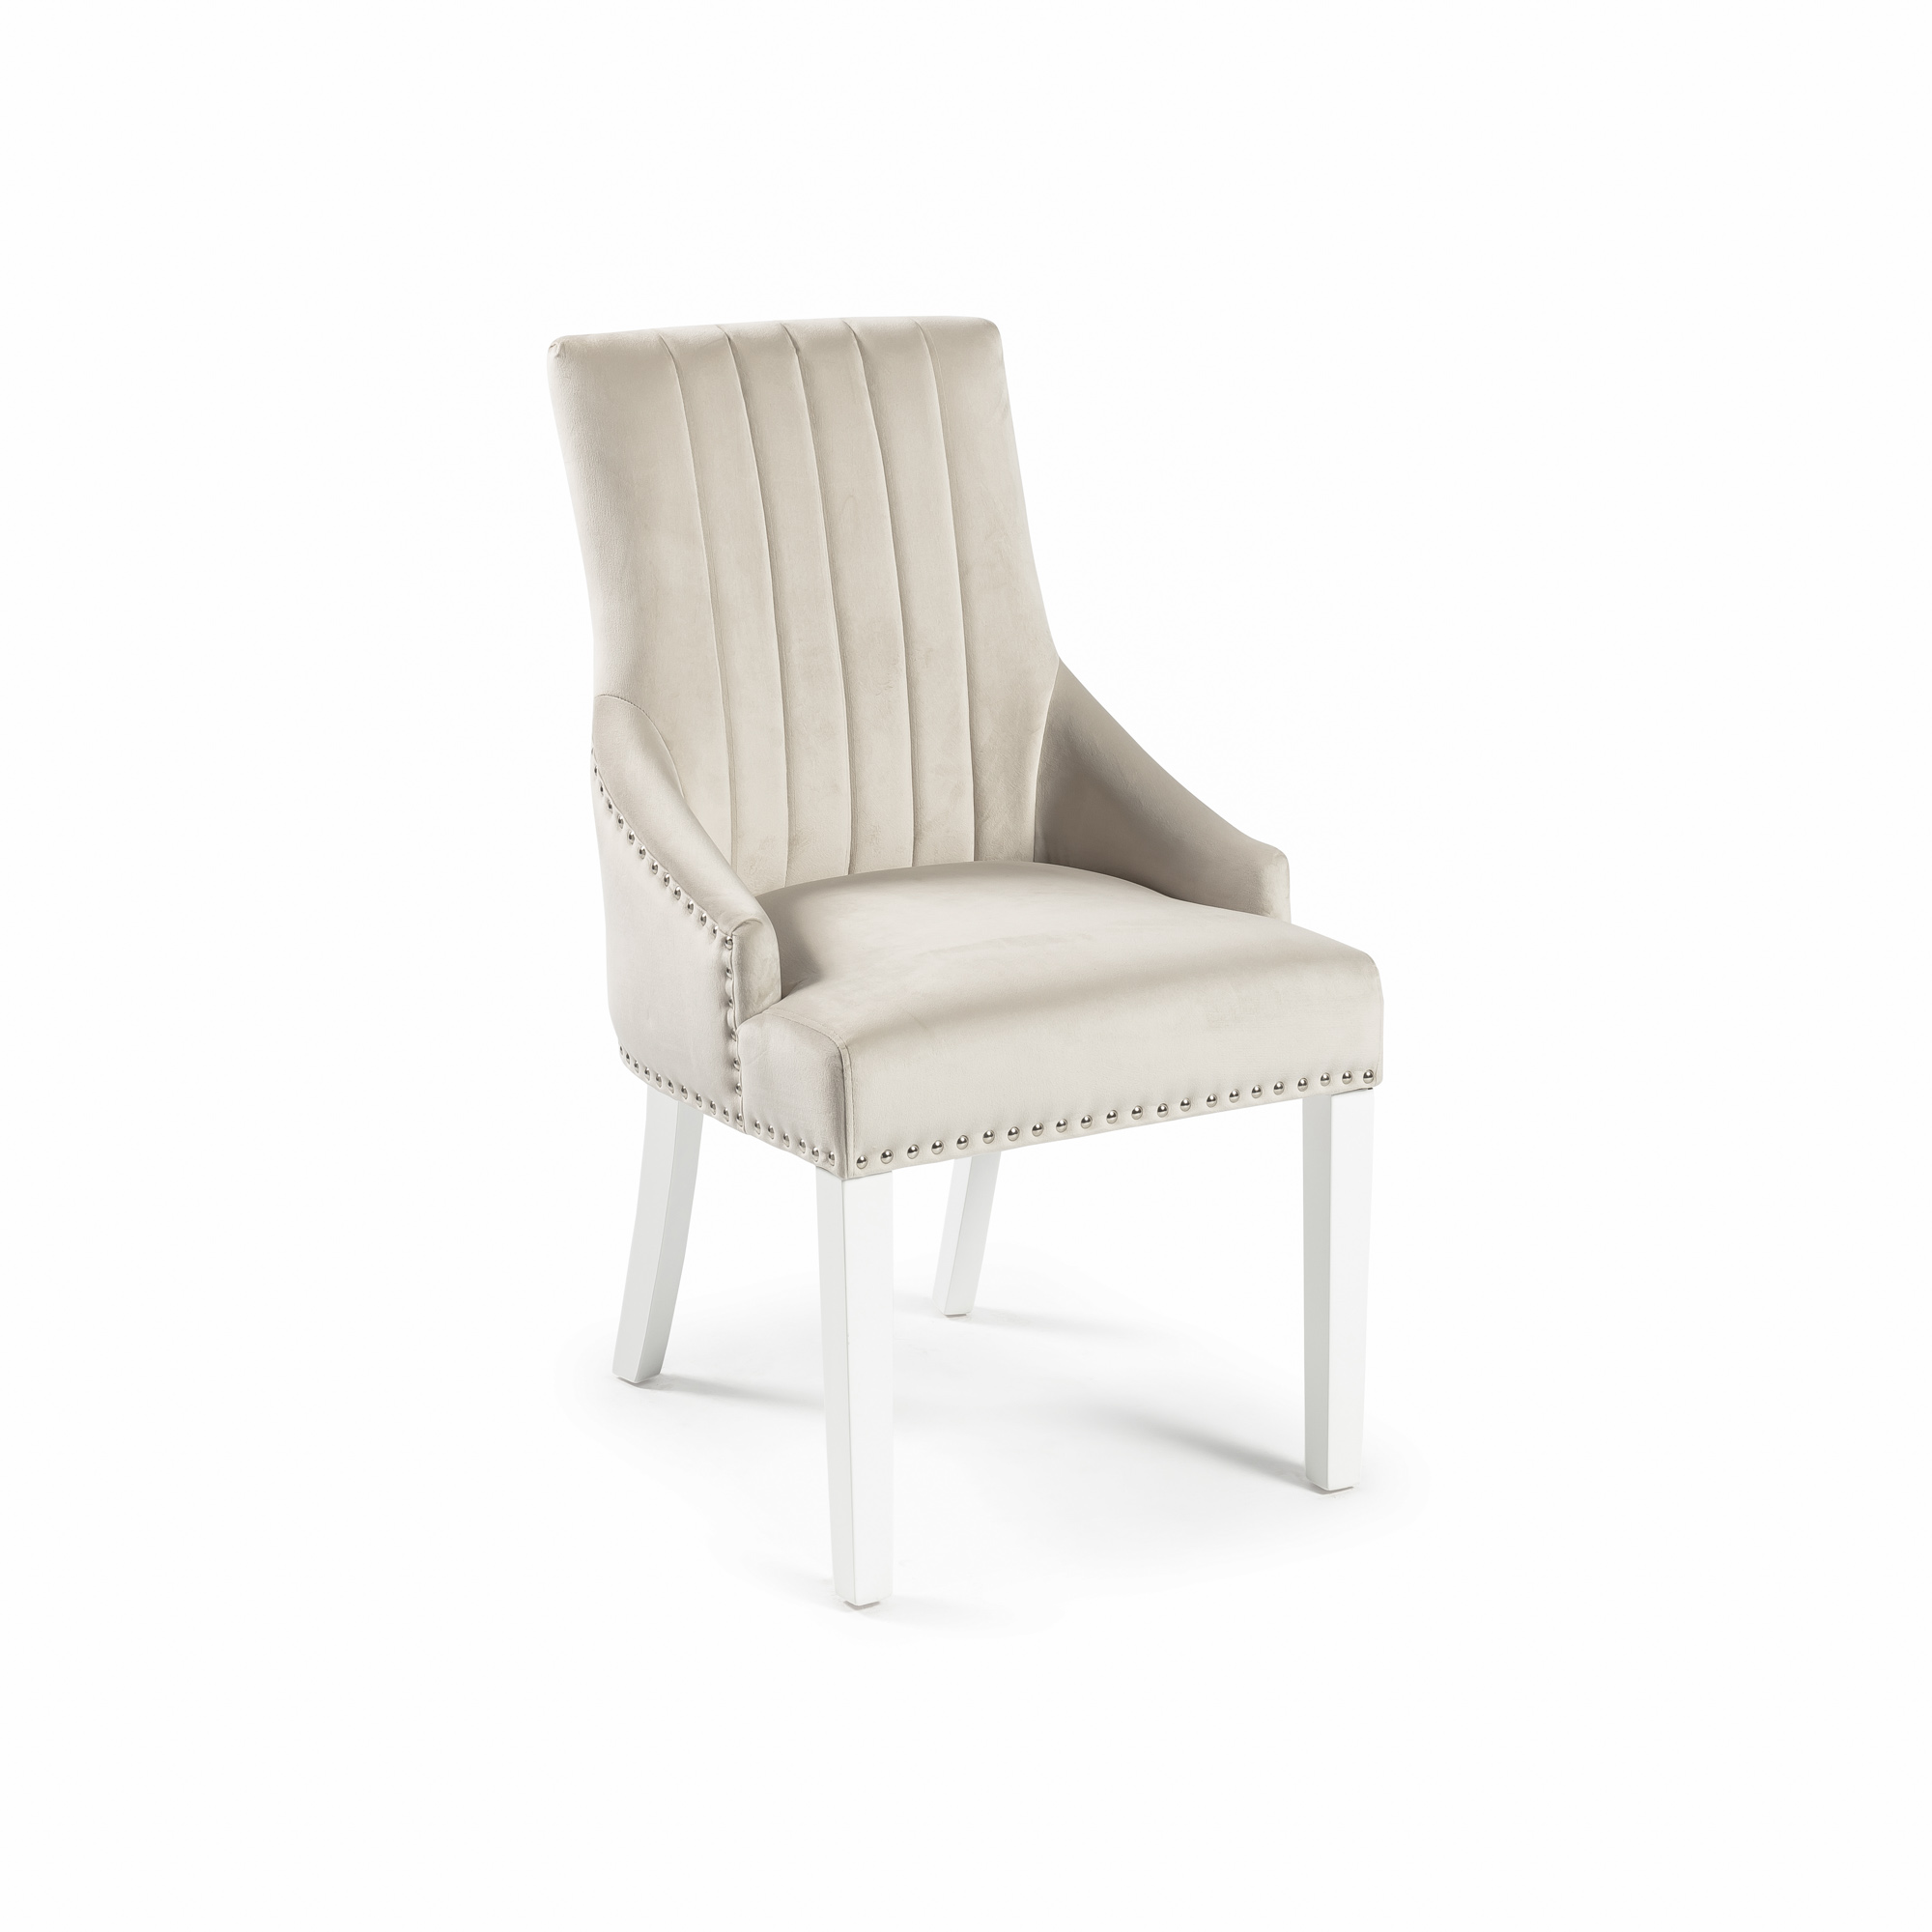 Chelsea Cream Velvet Scoop Dining Chairs With White Legs (Set of 2)